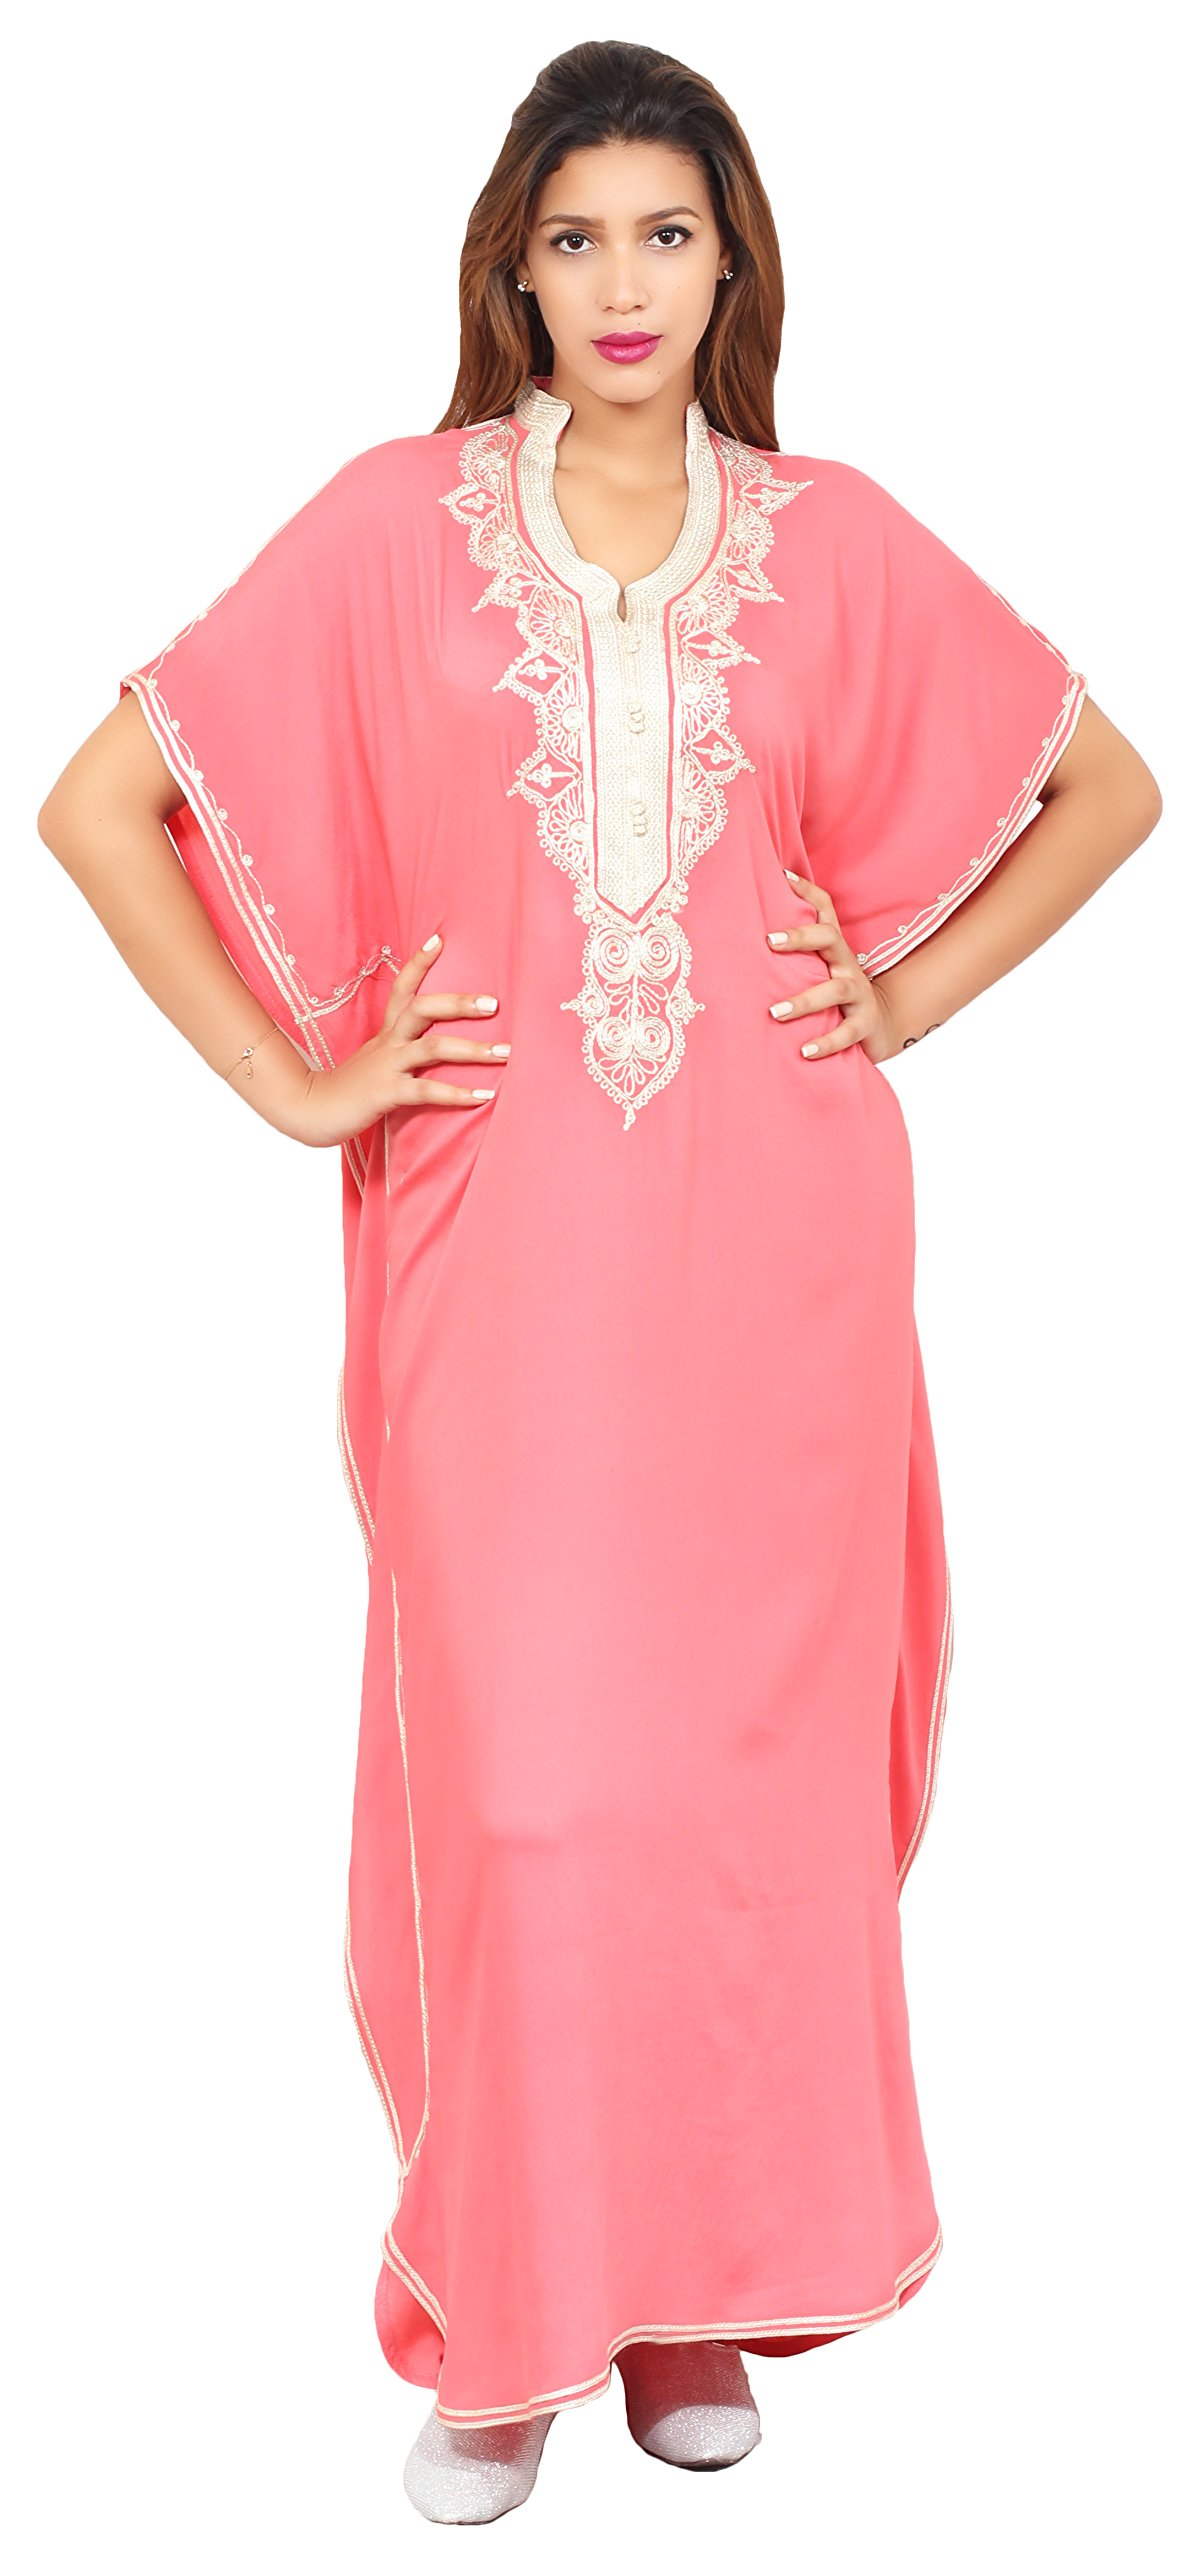 Moroccan Caftan Hand Made Top Quality Fits SMALL to LARGE Breathable Cotton with Hand Embroidery Long Length